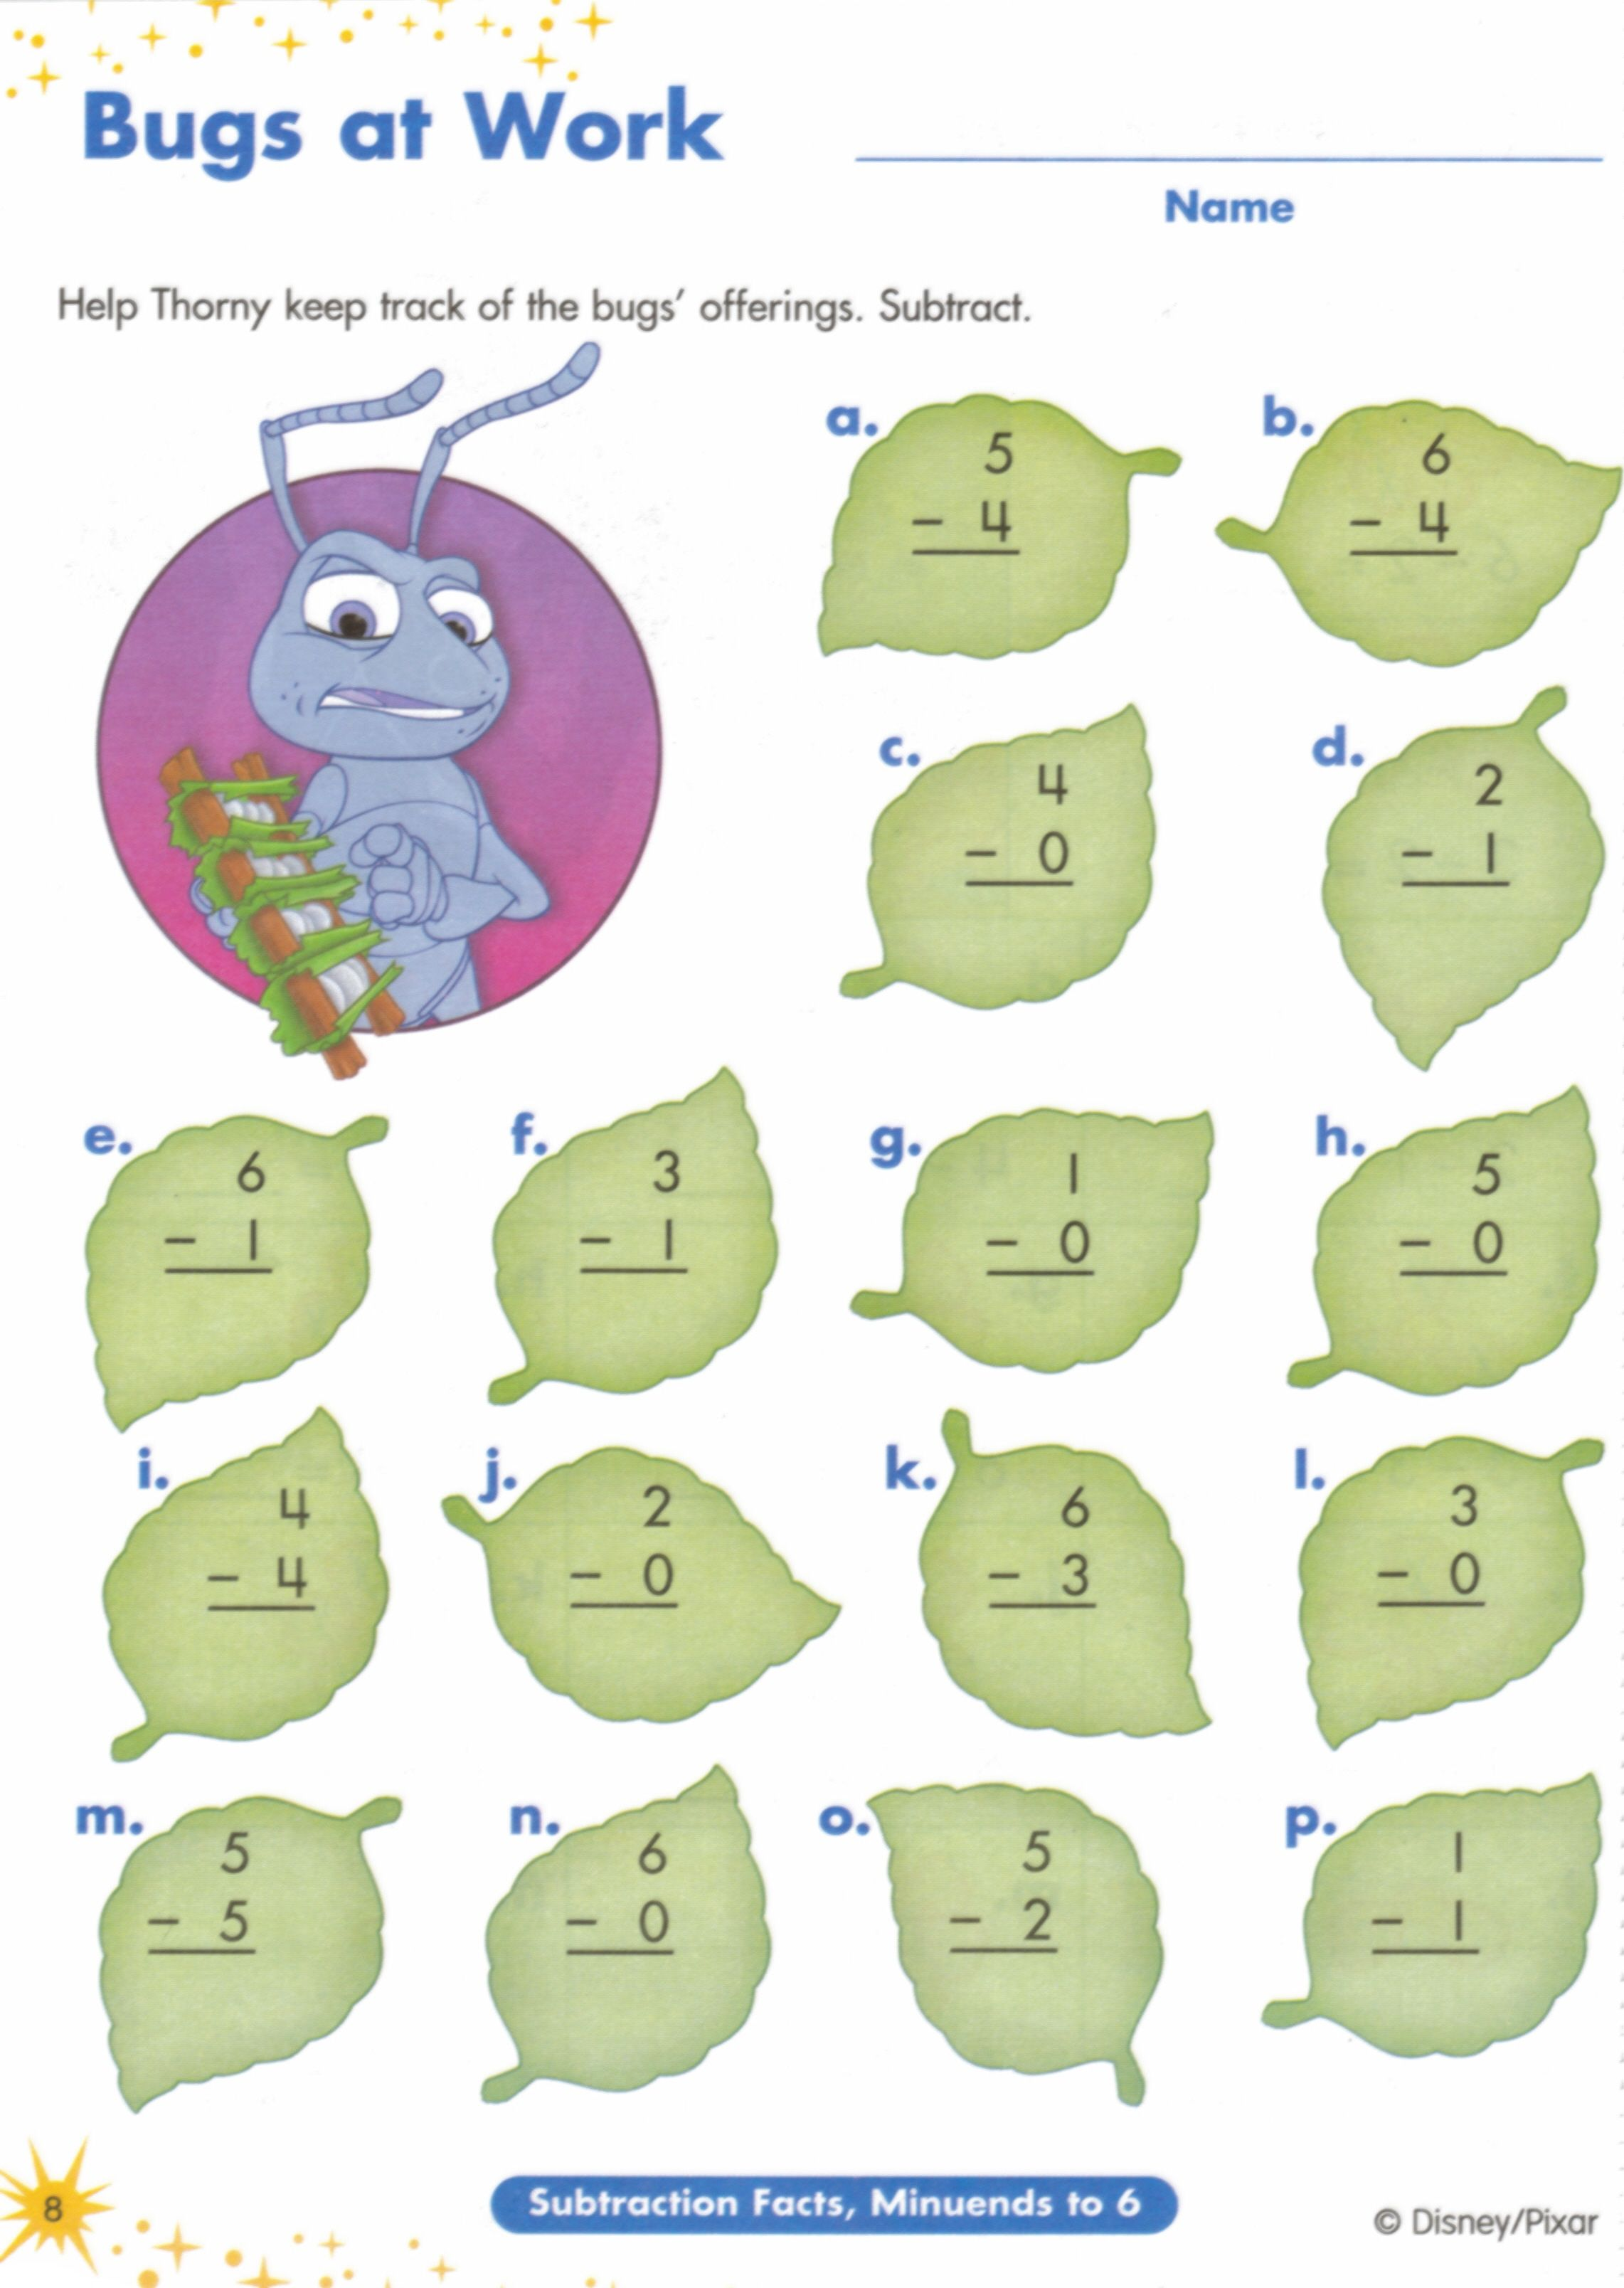 Aldiablosus  Ravishing  Images About Worksheets On Pinterest  Fun Facts For Kids  With Likable  Images About Worksheets On Pinterest  Fun Facts For Kids Earth Day Worksheets And Jungles With Adorable Times Table Worksheets Grade  Also Sequencing Math Worksheets In Addition Year  Trigonometry Worksheets And Nouns Worksheets For Grade  As Well As Creating Worksheet In Ms Excel Additionally Money Problem Solving Worksheets From Pinterestcom With Aldiablosus  Likable  Images About Worksheets On Pinterest  Fun Facts For Kids  With Adorable  Images About Worksheets On Pinterest  Fun Facts For Kids Earth Day Worksheets And Jungles And Ravishing Times Table Worksheets Grade  Also Sequencing Math Worksheets In Addition Year  Trigonometry Worksheets From Pinterestcom